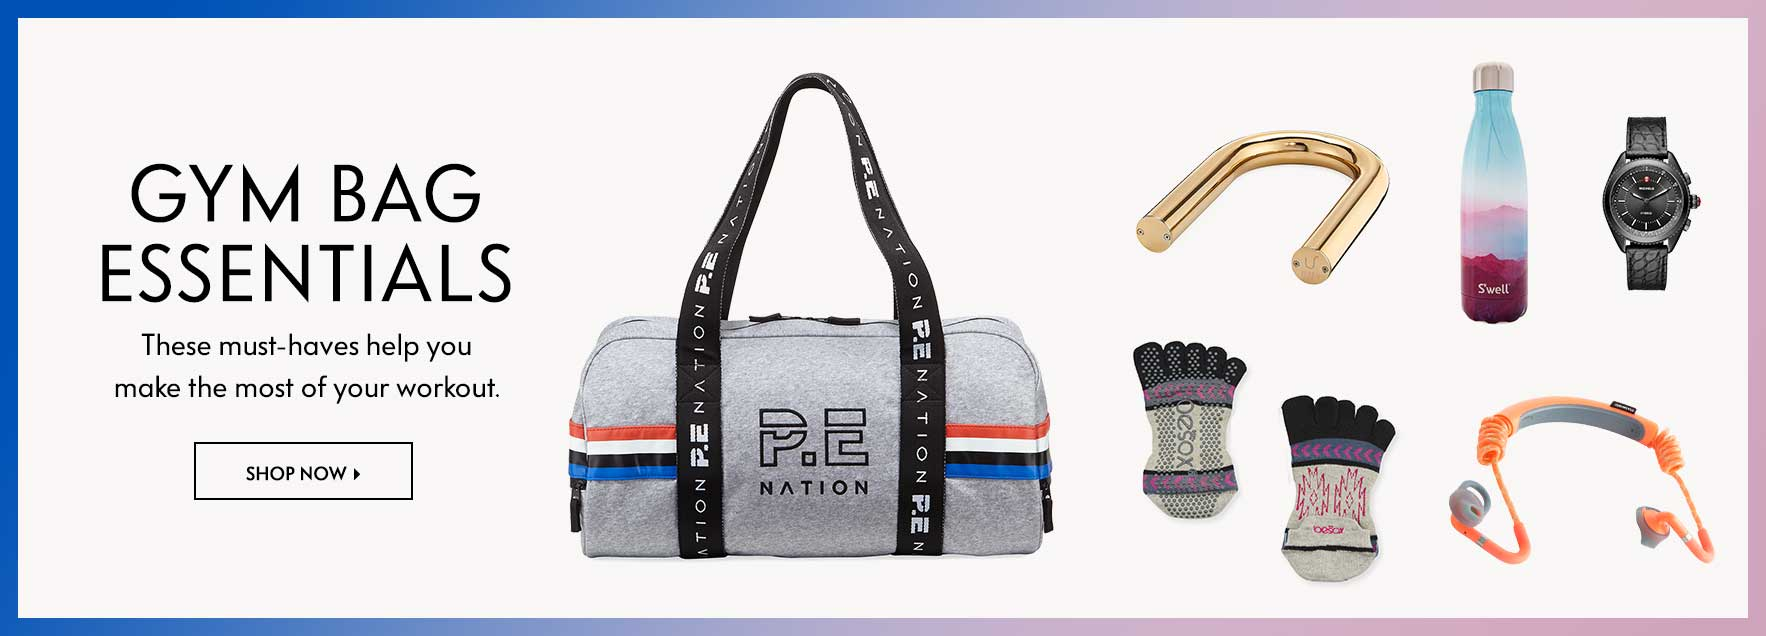 Gym Bag Essentials - These must-haves help you make the most of your workout.